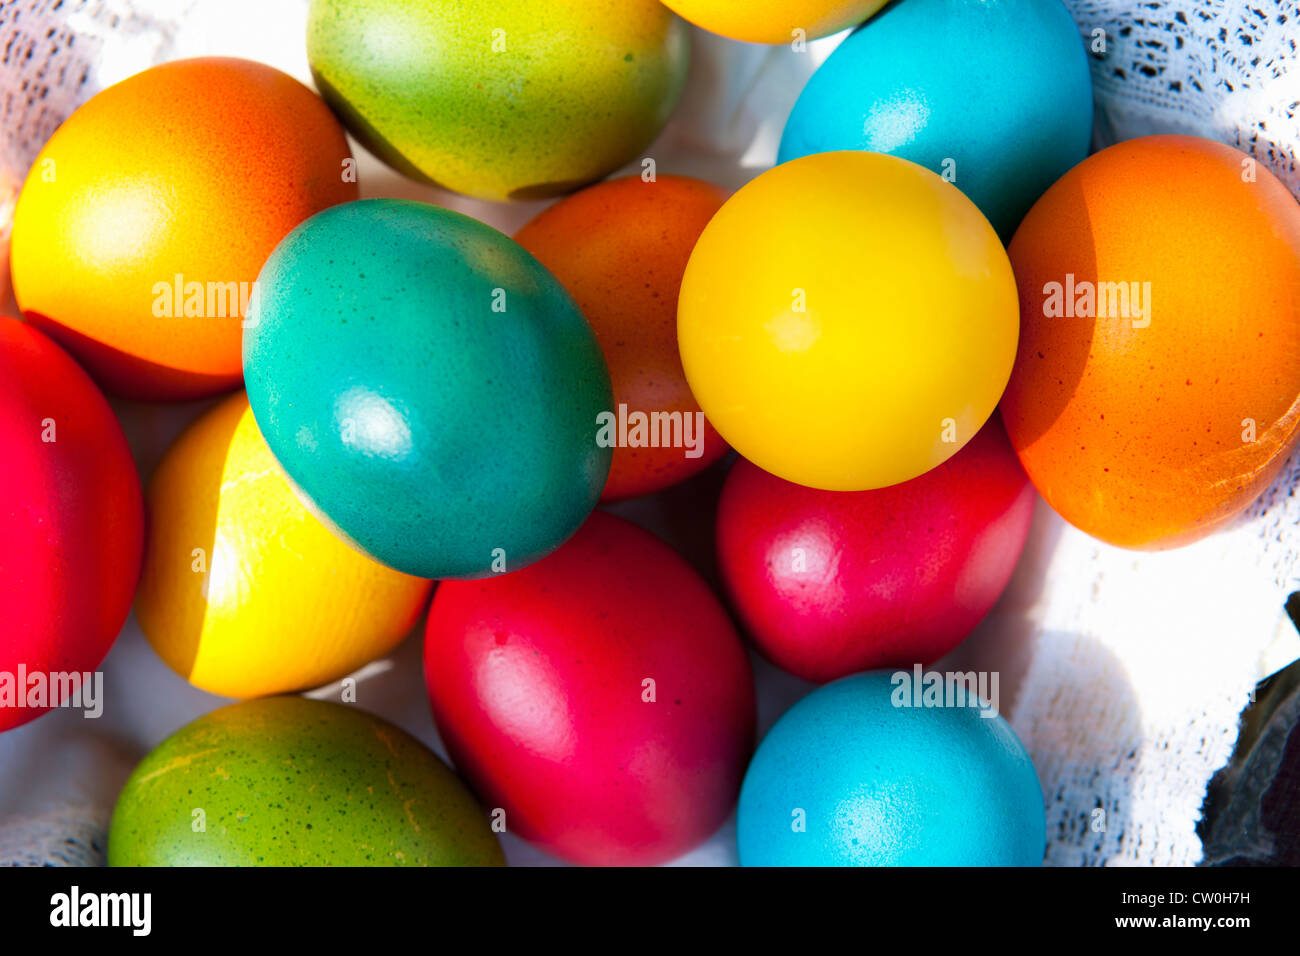 Close up of colorful Easter eggs - Stock Image